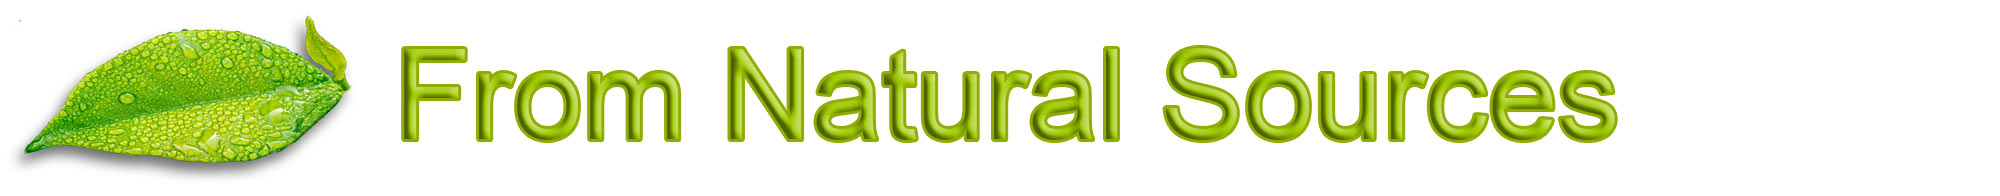 PureSafe is near me in Sarasota and is a COVID Disinfectant Sanitizer is from natural sources and at puresafe.net